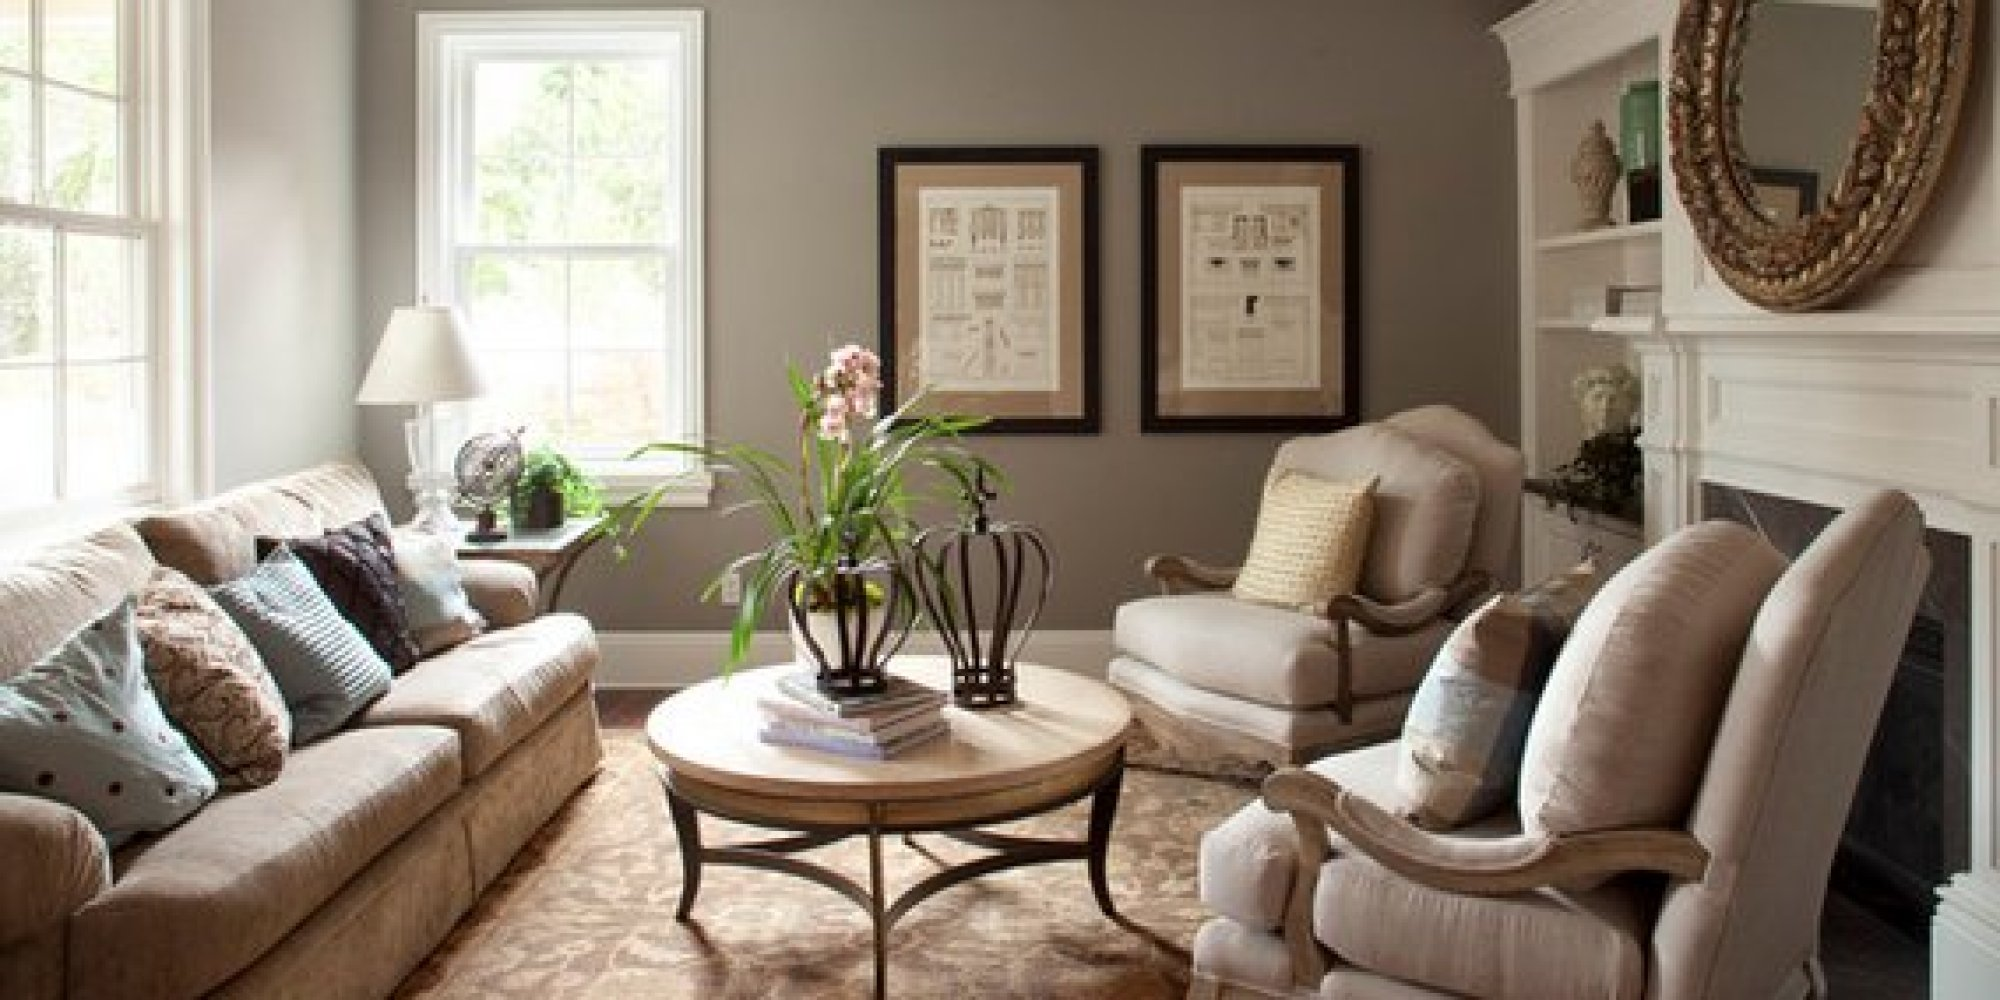 The 6 best paint colors that work in any home huffpost - Colour schemes for living rooms 2015 ...